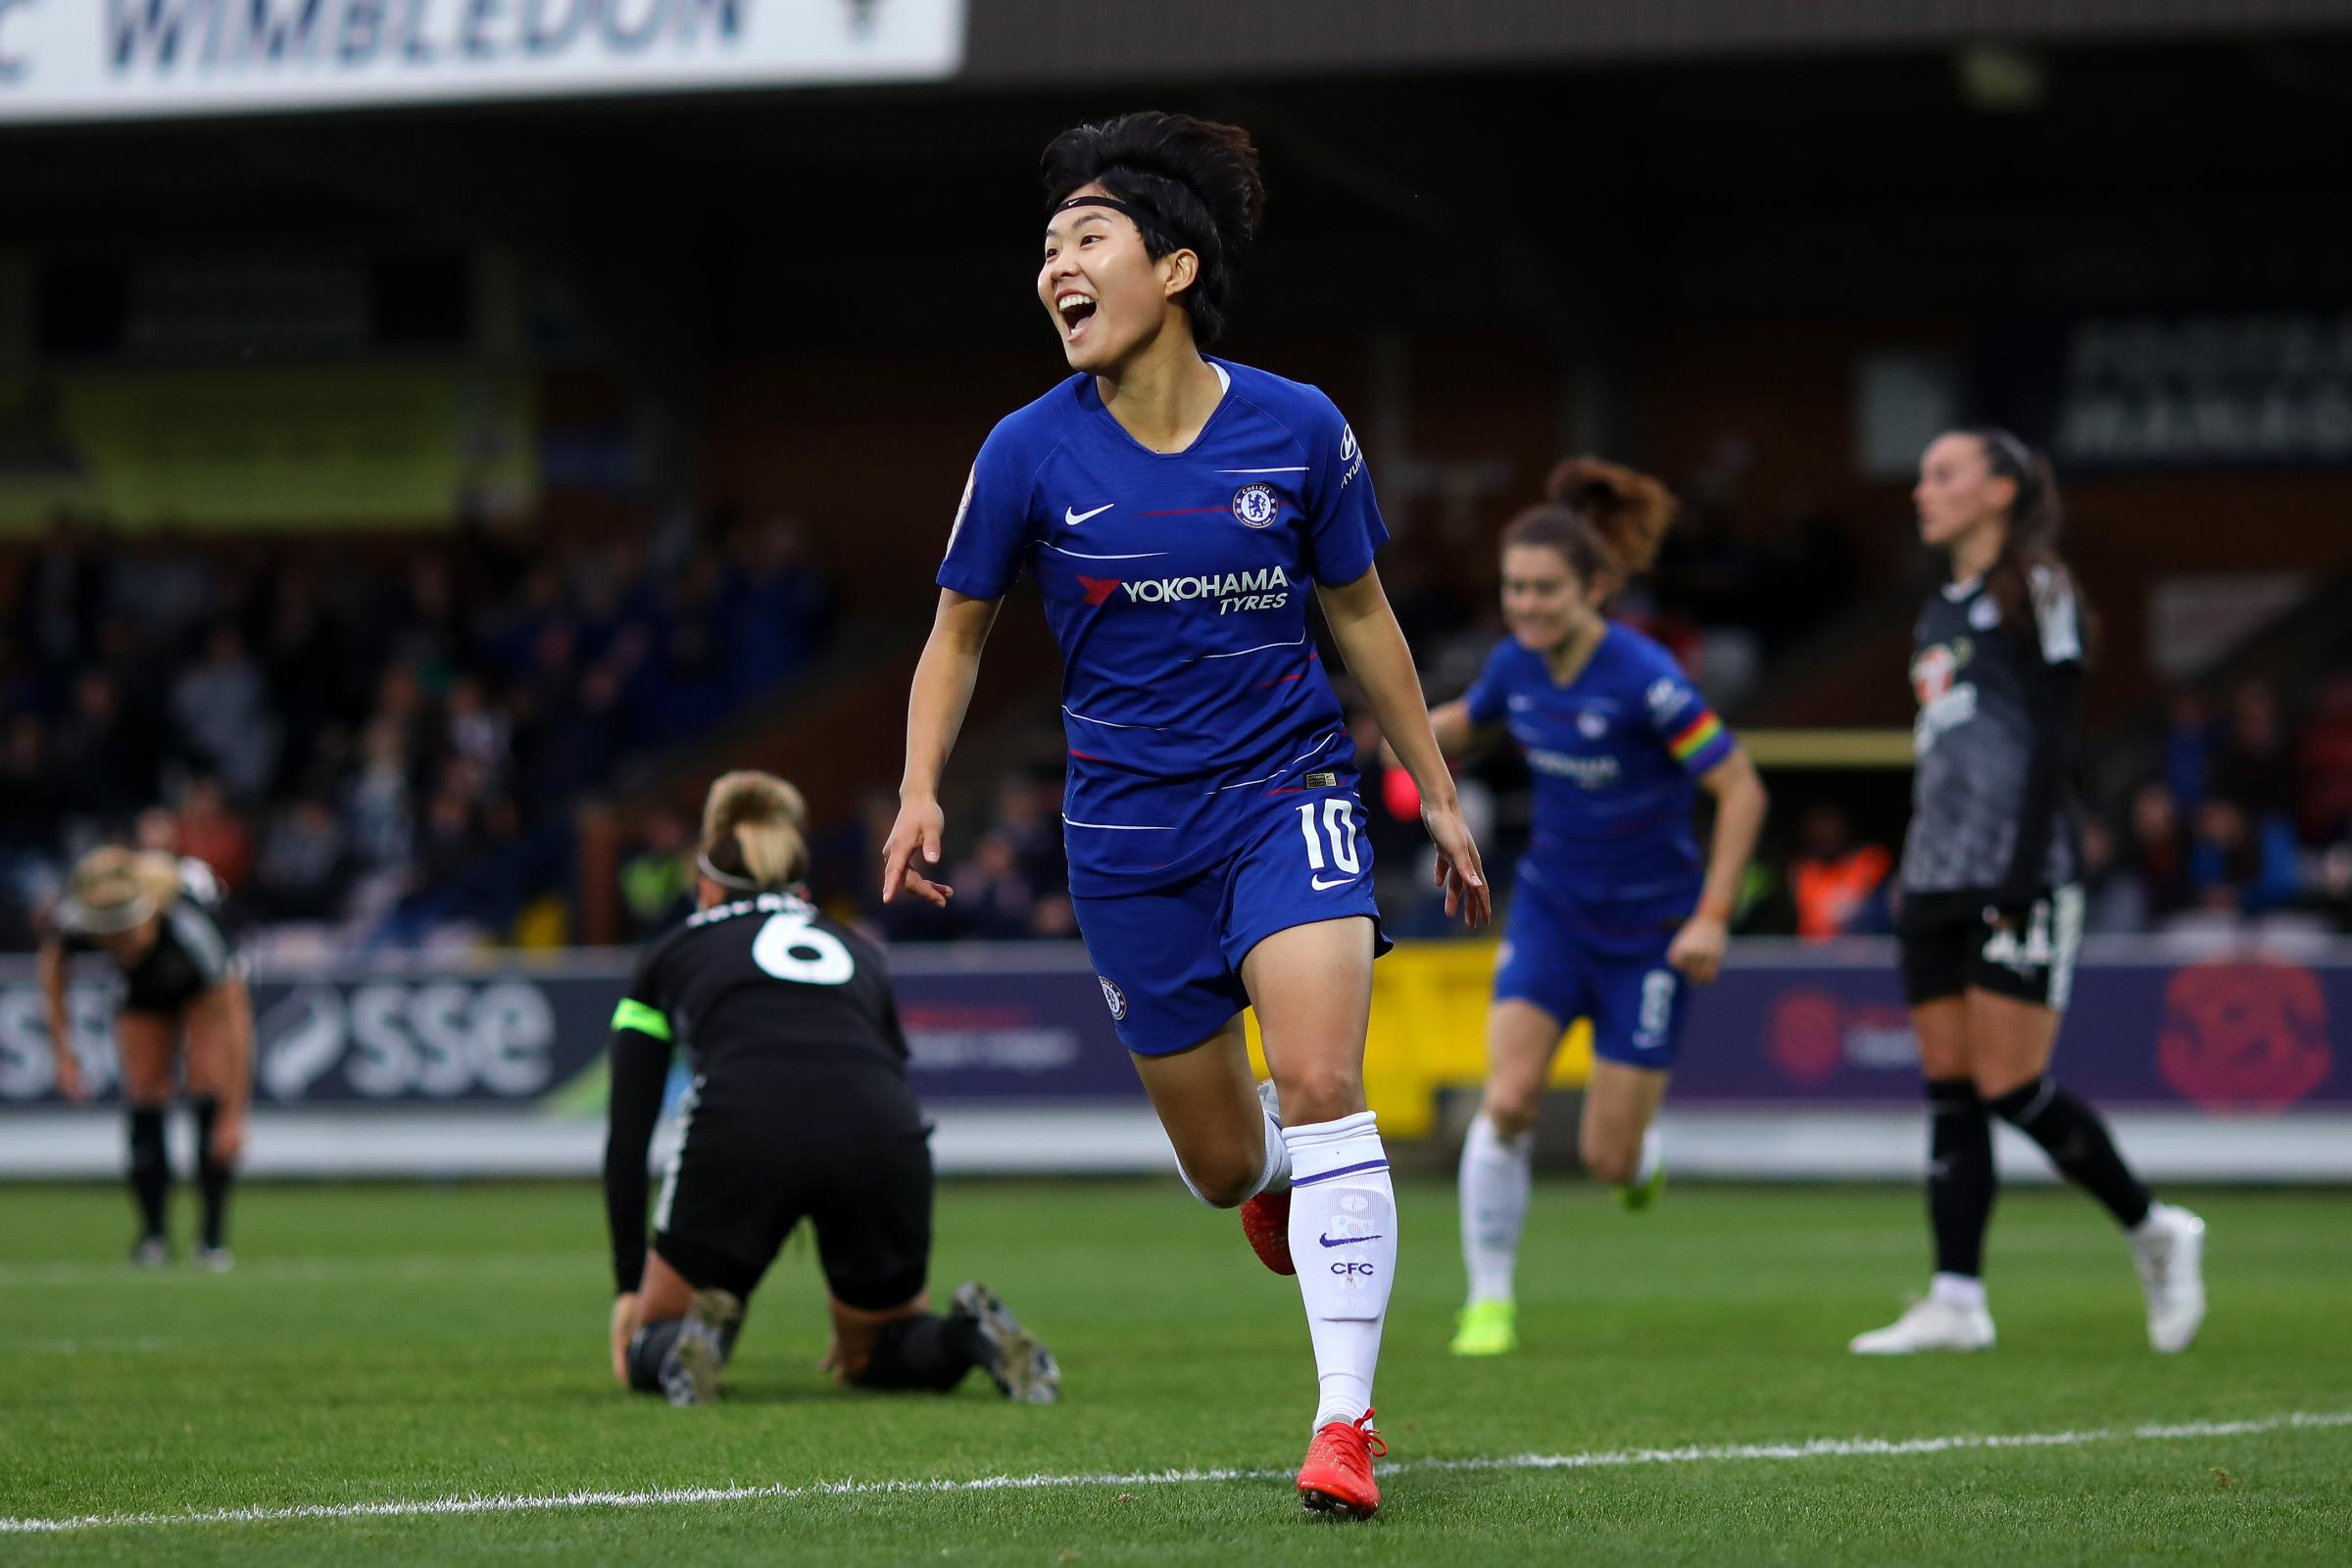 KINGSTON UPON THAMES, ENGLAND - DECEMBER 02: Ji So Yun of Chelsea celebrates after scoring the first goal of the game during the FA Women's Super League match between Chelsea and Reading at The Cherry Red Records Stadium  (Photo by Chelsea Football Cl